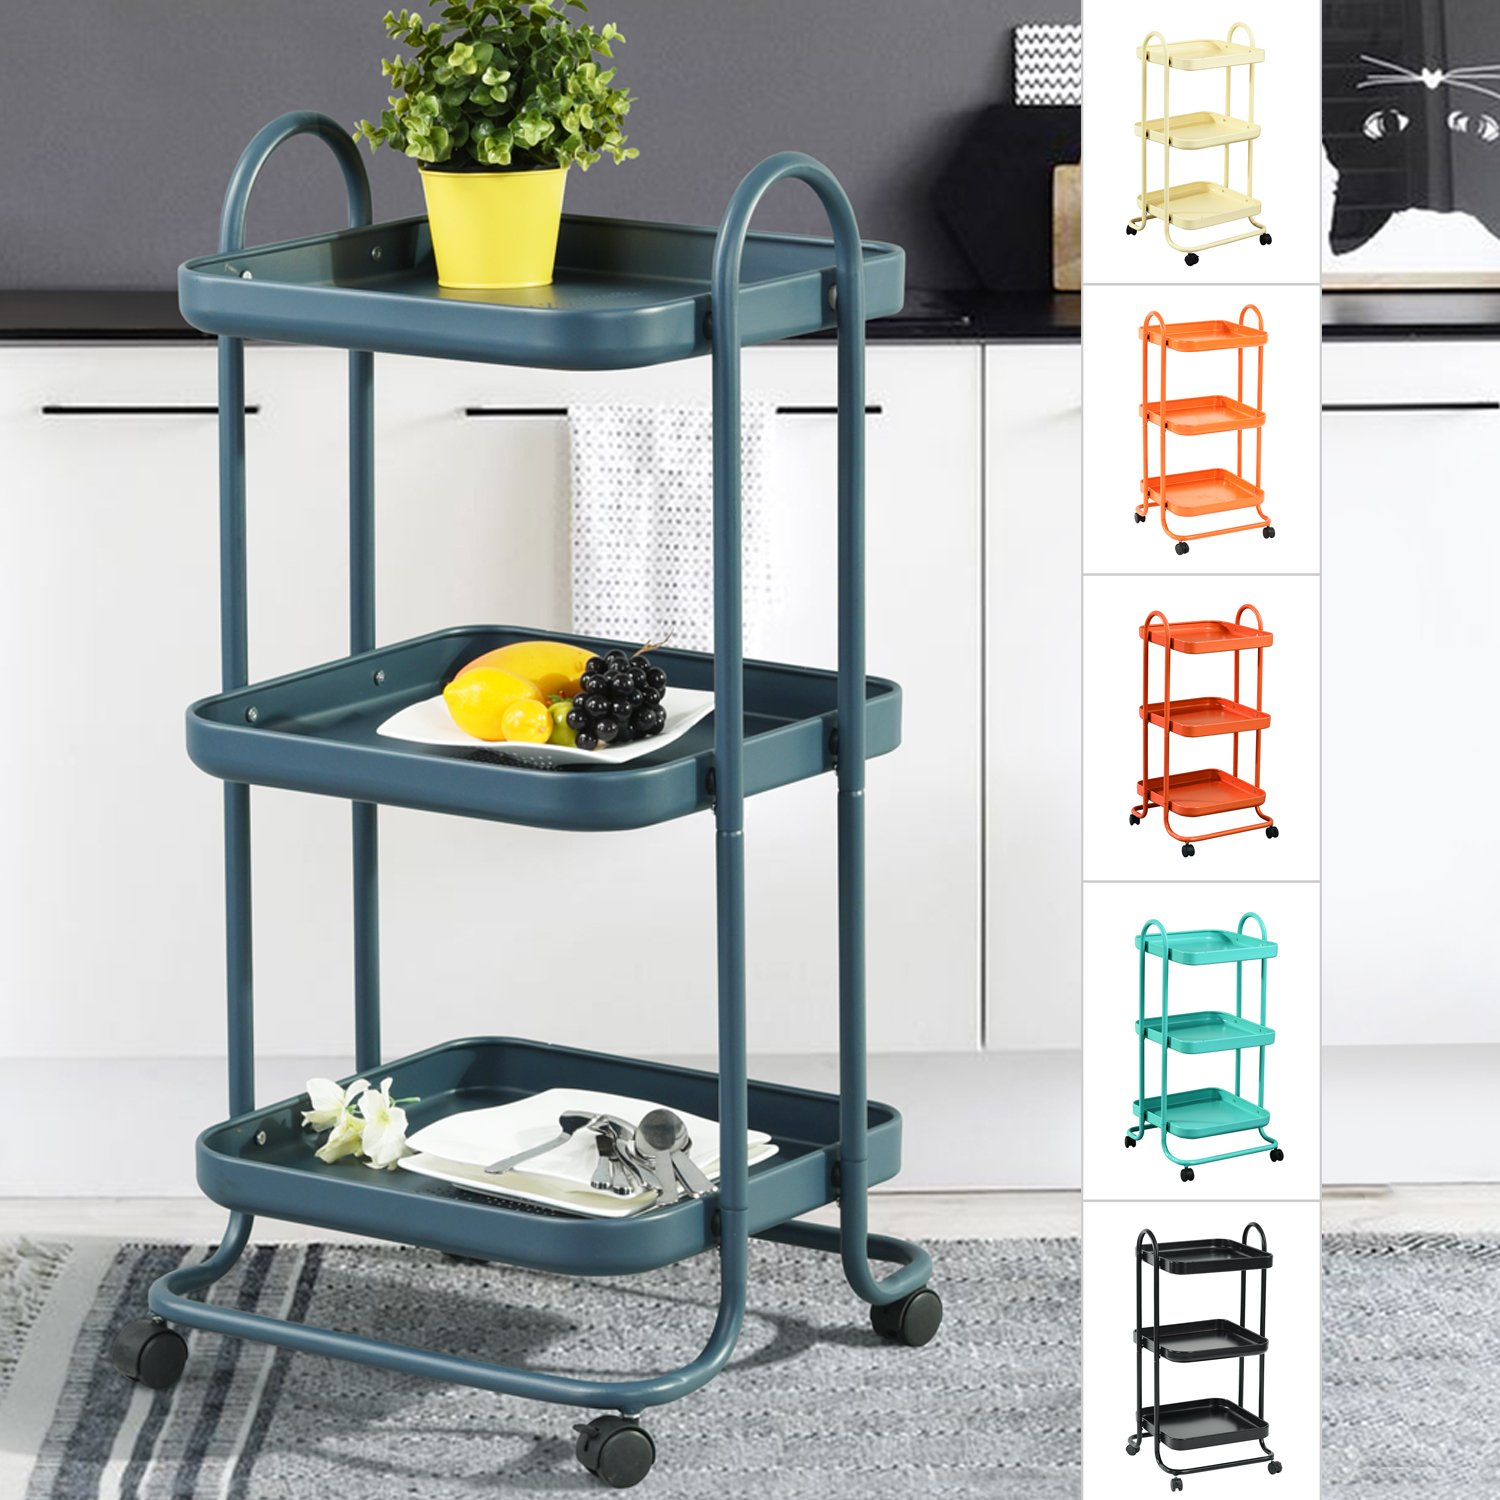 3-Tier Metal Utility Service Rolling Handle Storage Kitchen Office Medicine Trolley Kid Room Cart with wheels in Dark Grey